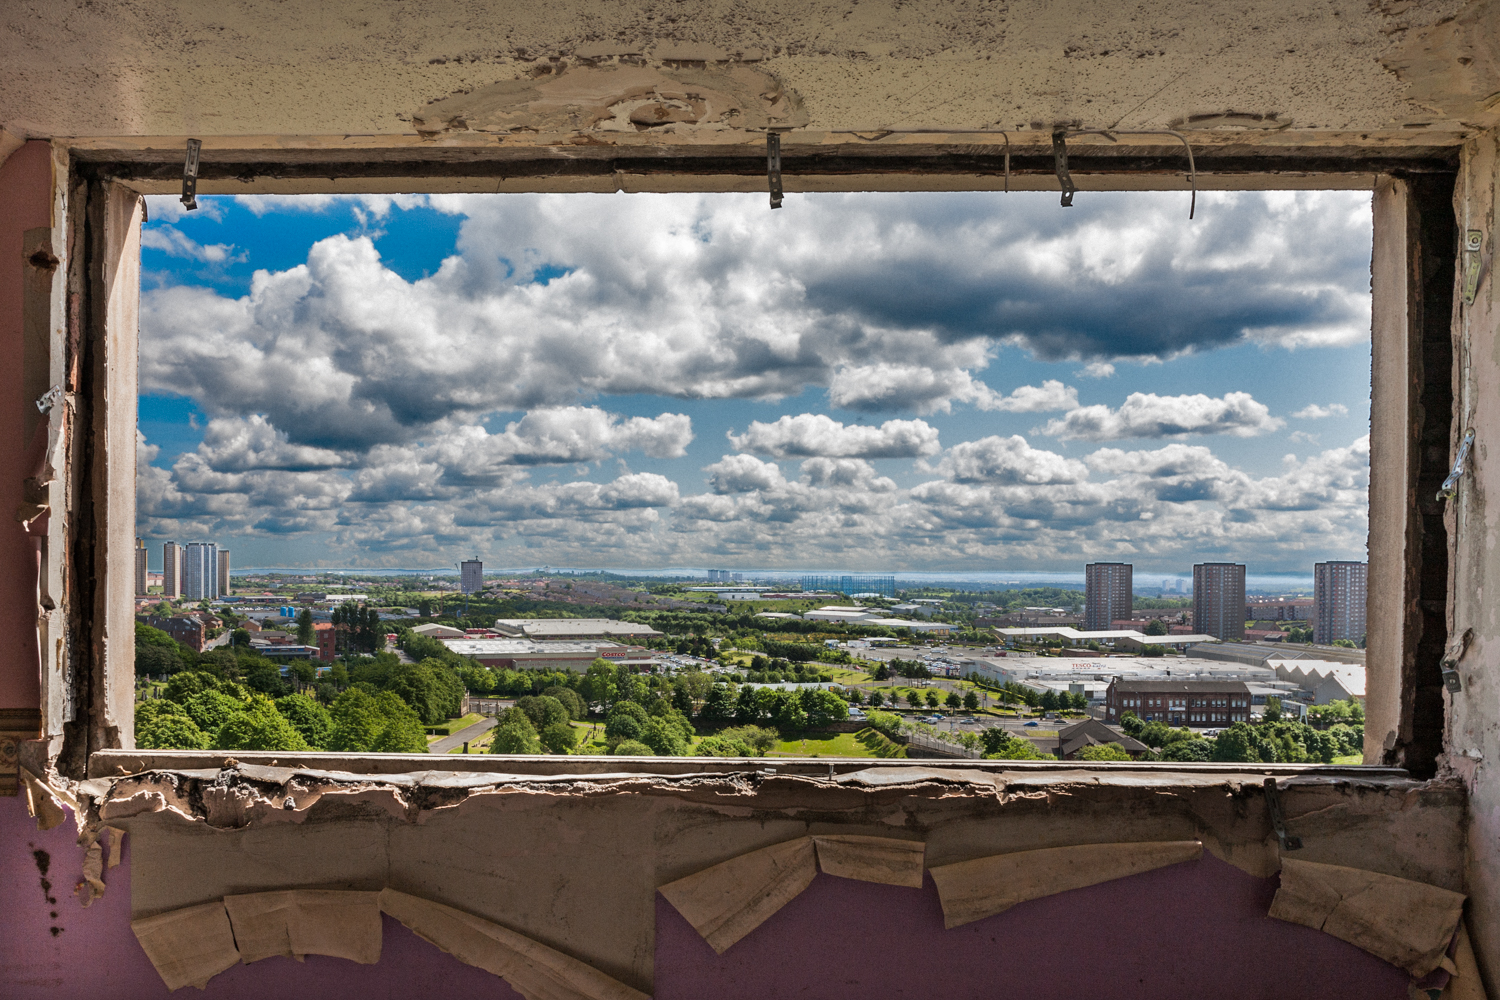 CL_Disappearing_Glasgow-13.jpg